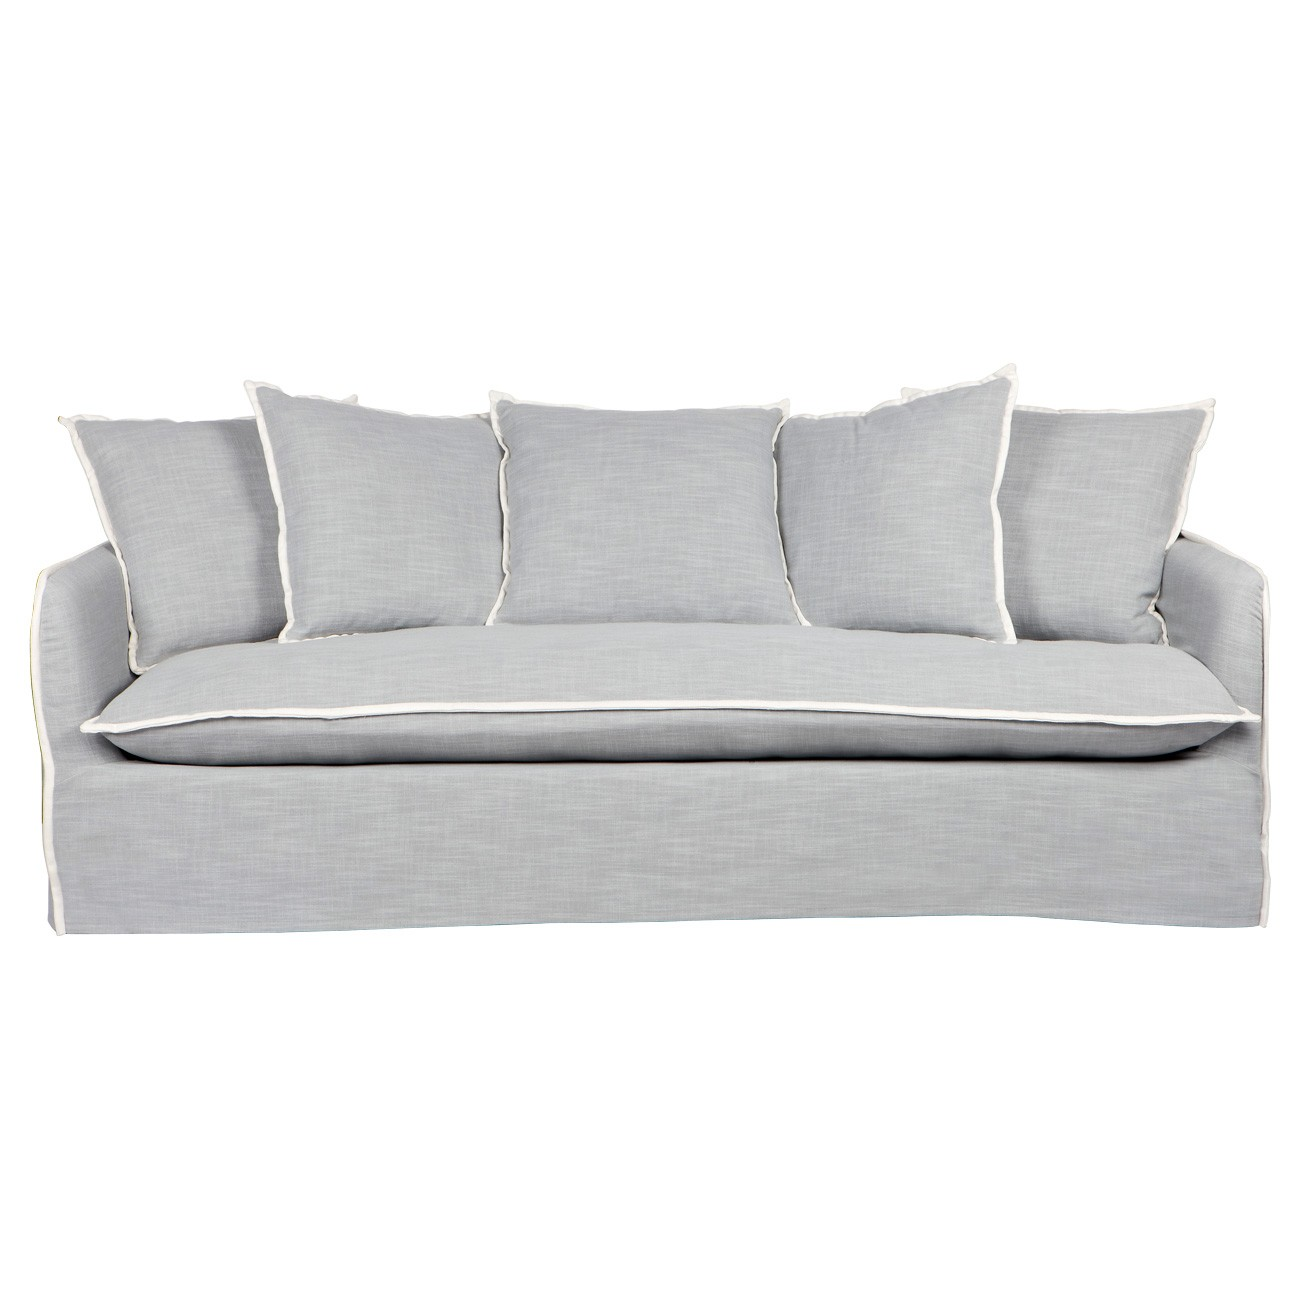 Long Island Fabric Sofa, 3 Seater, Dove Grey